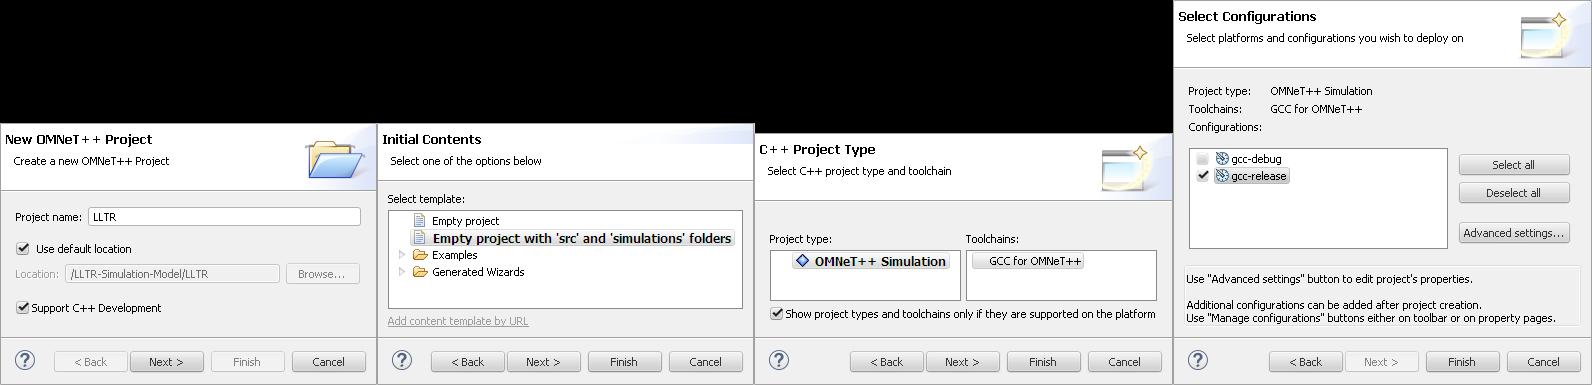 New OMNeT++ project Wizard